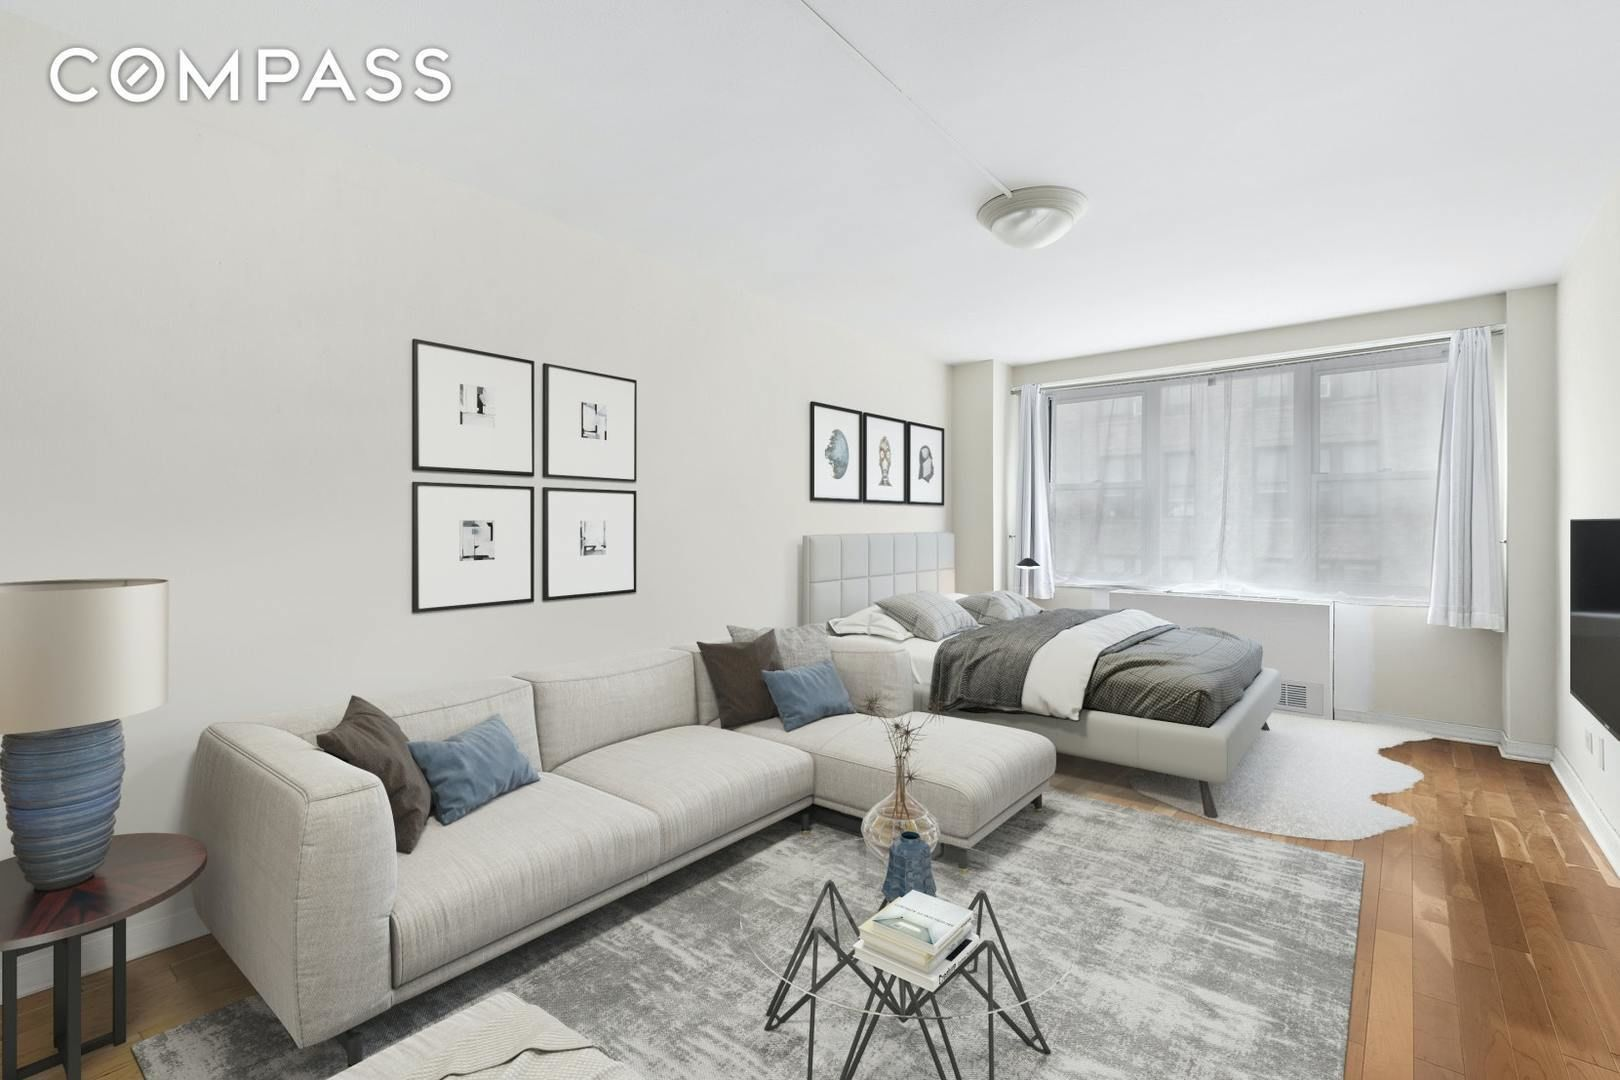 Apartment for sale at 301 East 22nd Street, Apt 8-M